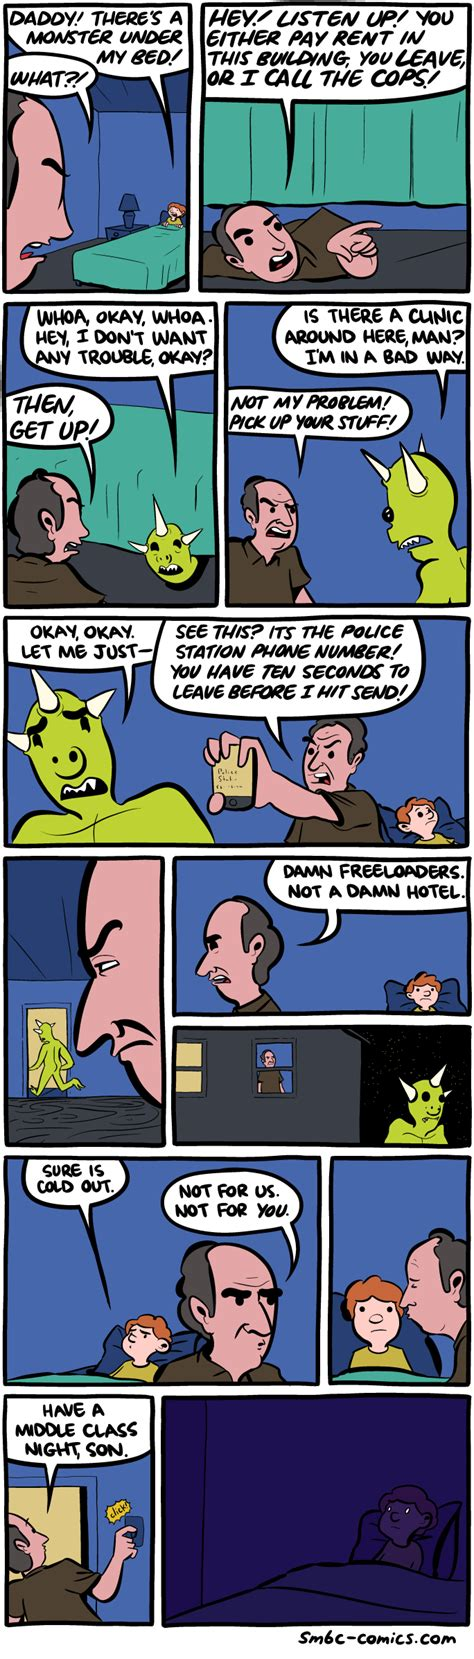 monster under the bed comic saturday morning breakfast cereal the monster under the bed